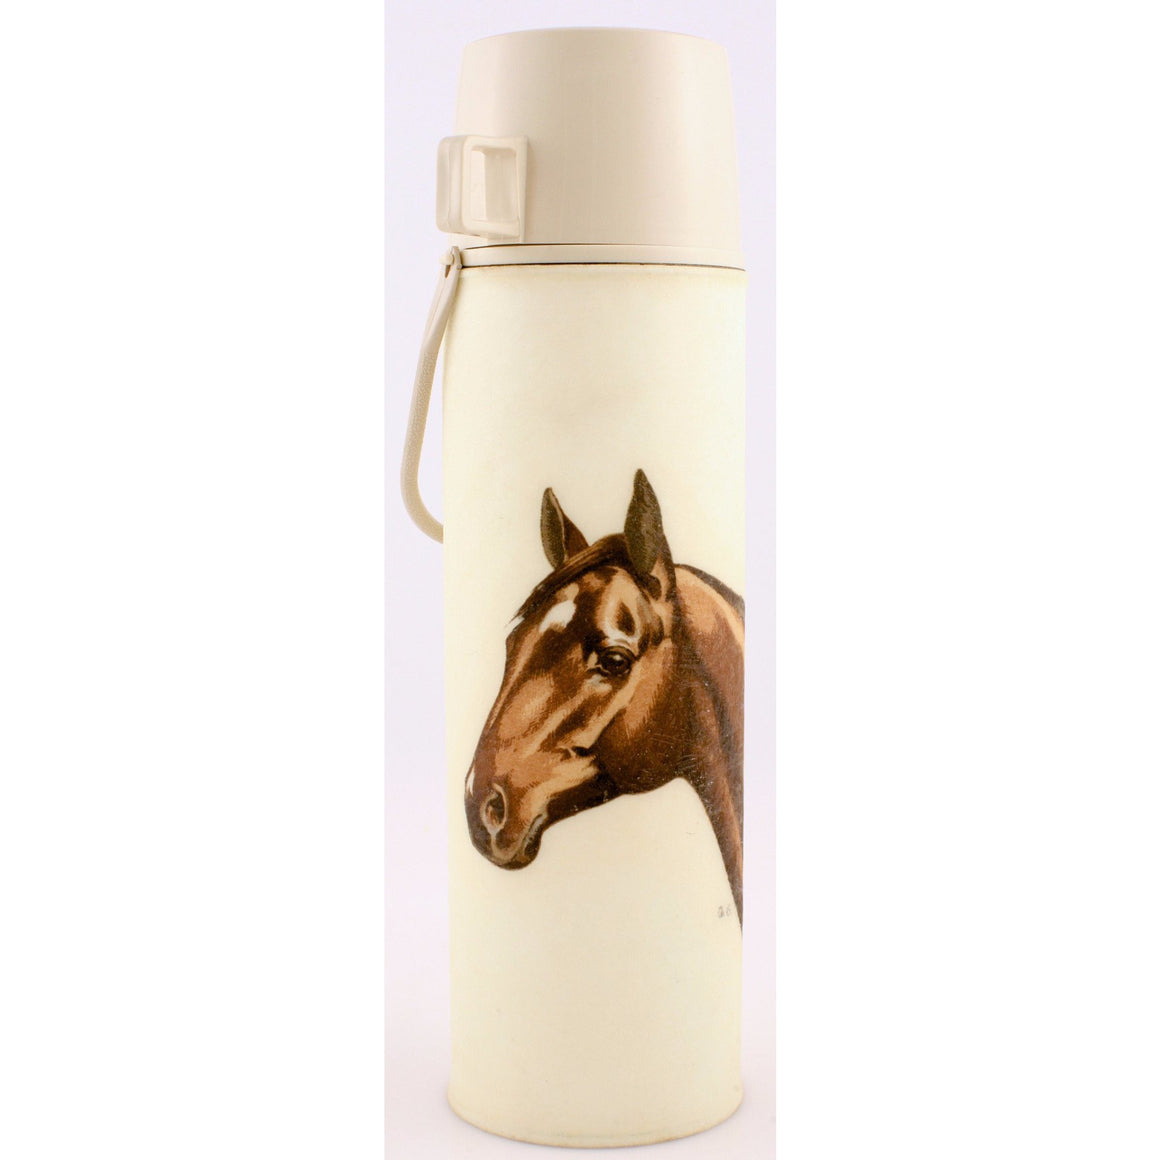 Horsehead Thermos